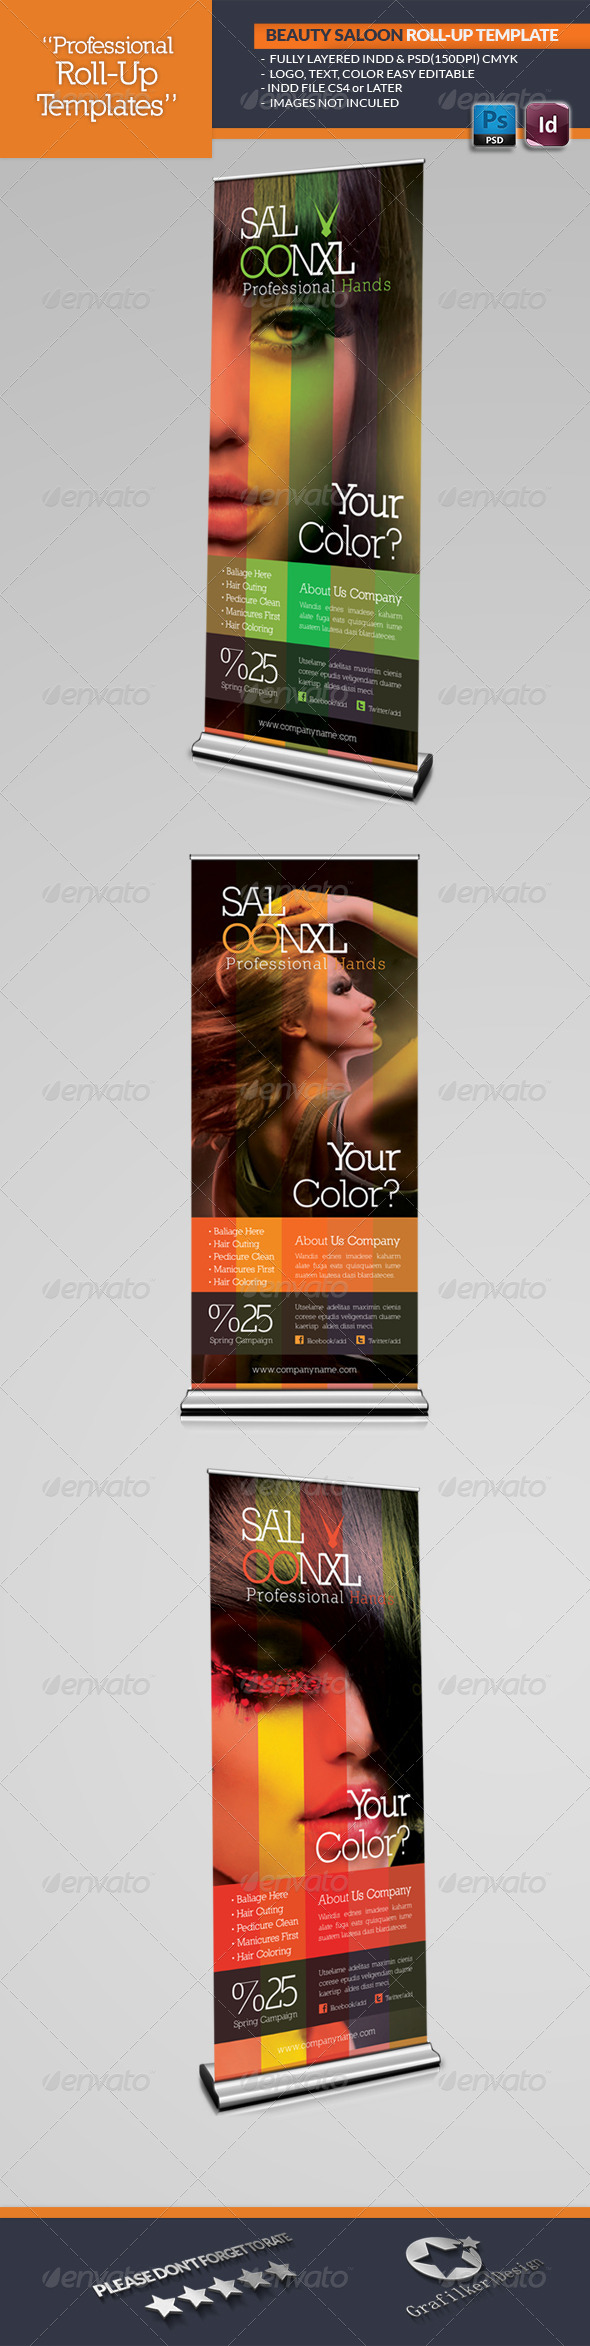 Beauty Salon Roll-Up Template - Signage Print Templates